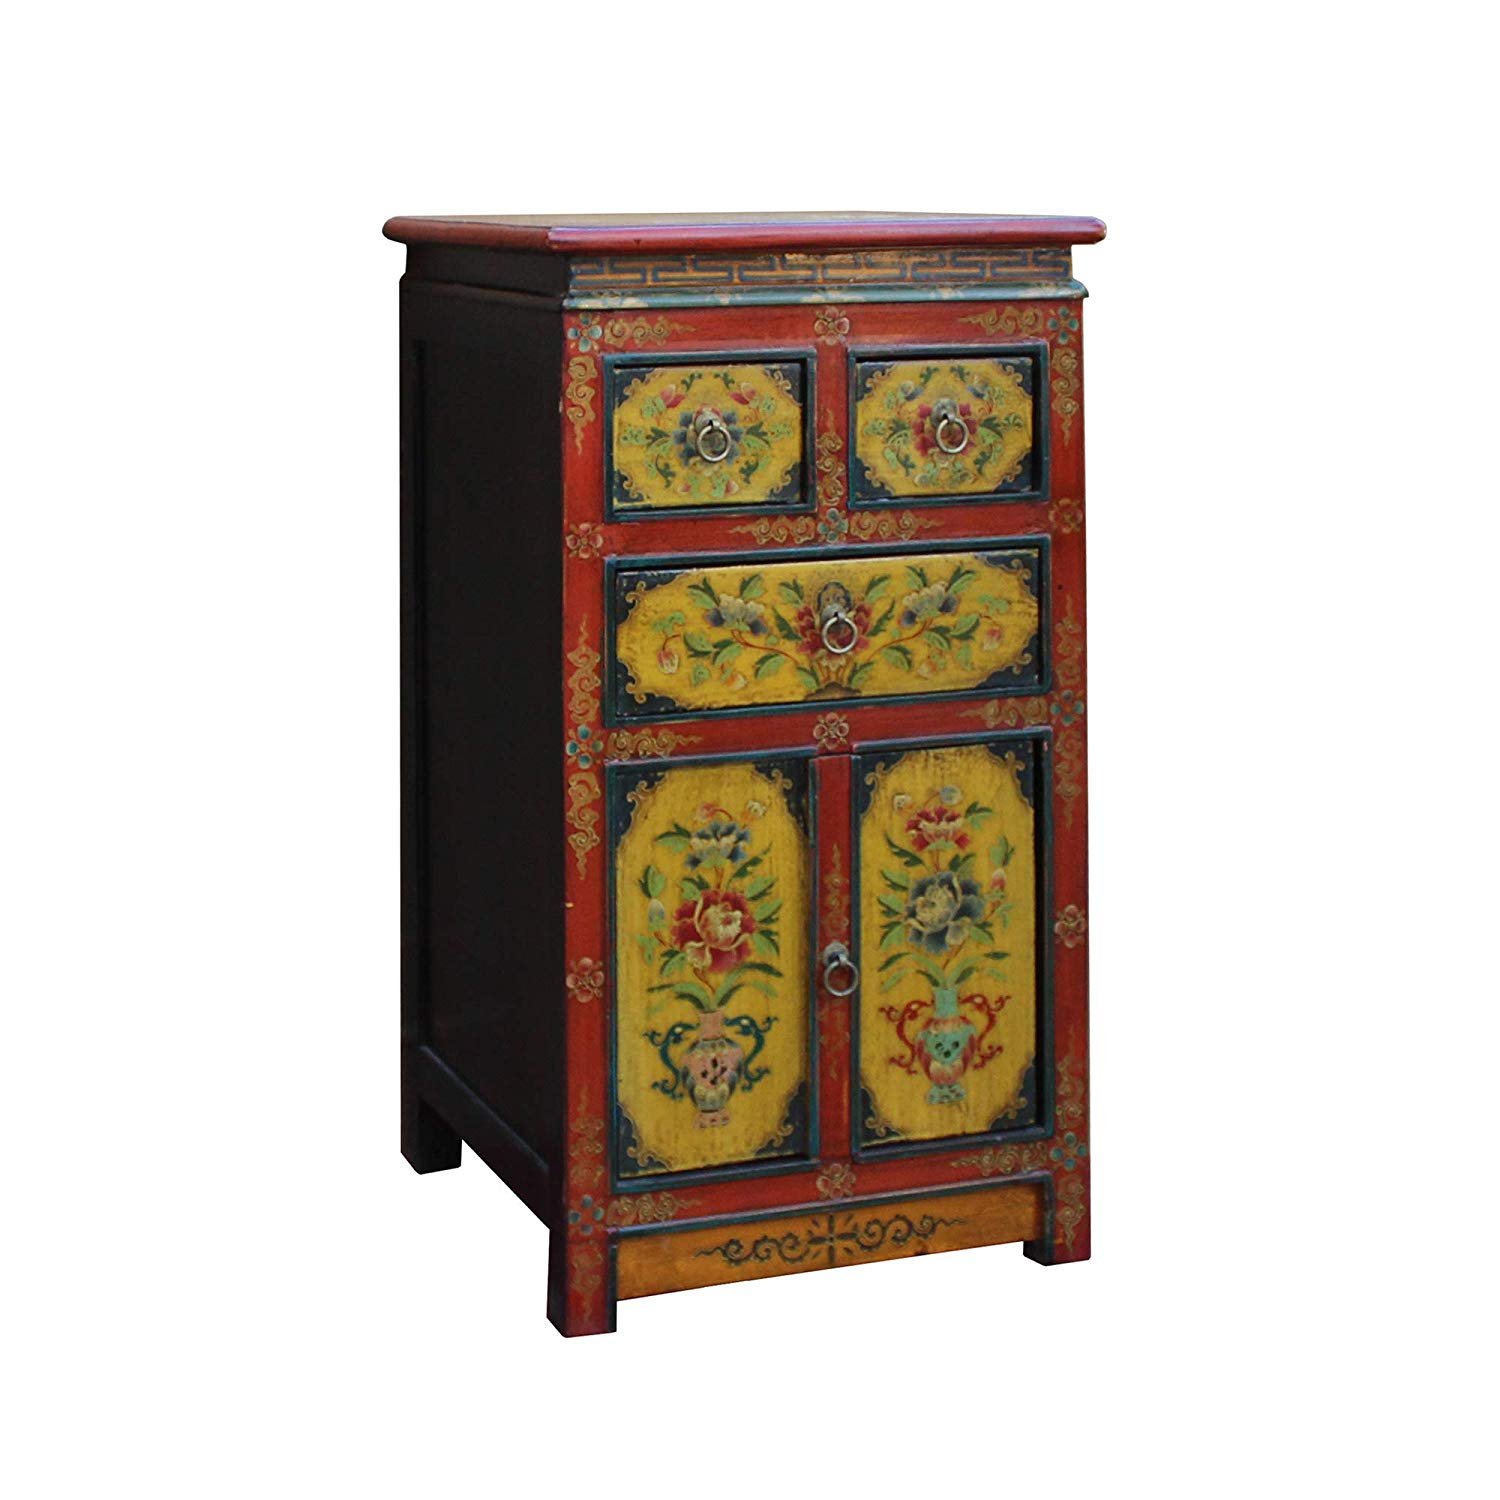 small cabinet tibetan oriental red black yellow orange end tables floral table nightstand kitchen dining slim bedside cabinets average dimensions tall shaped side silver mirrored